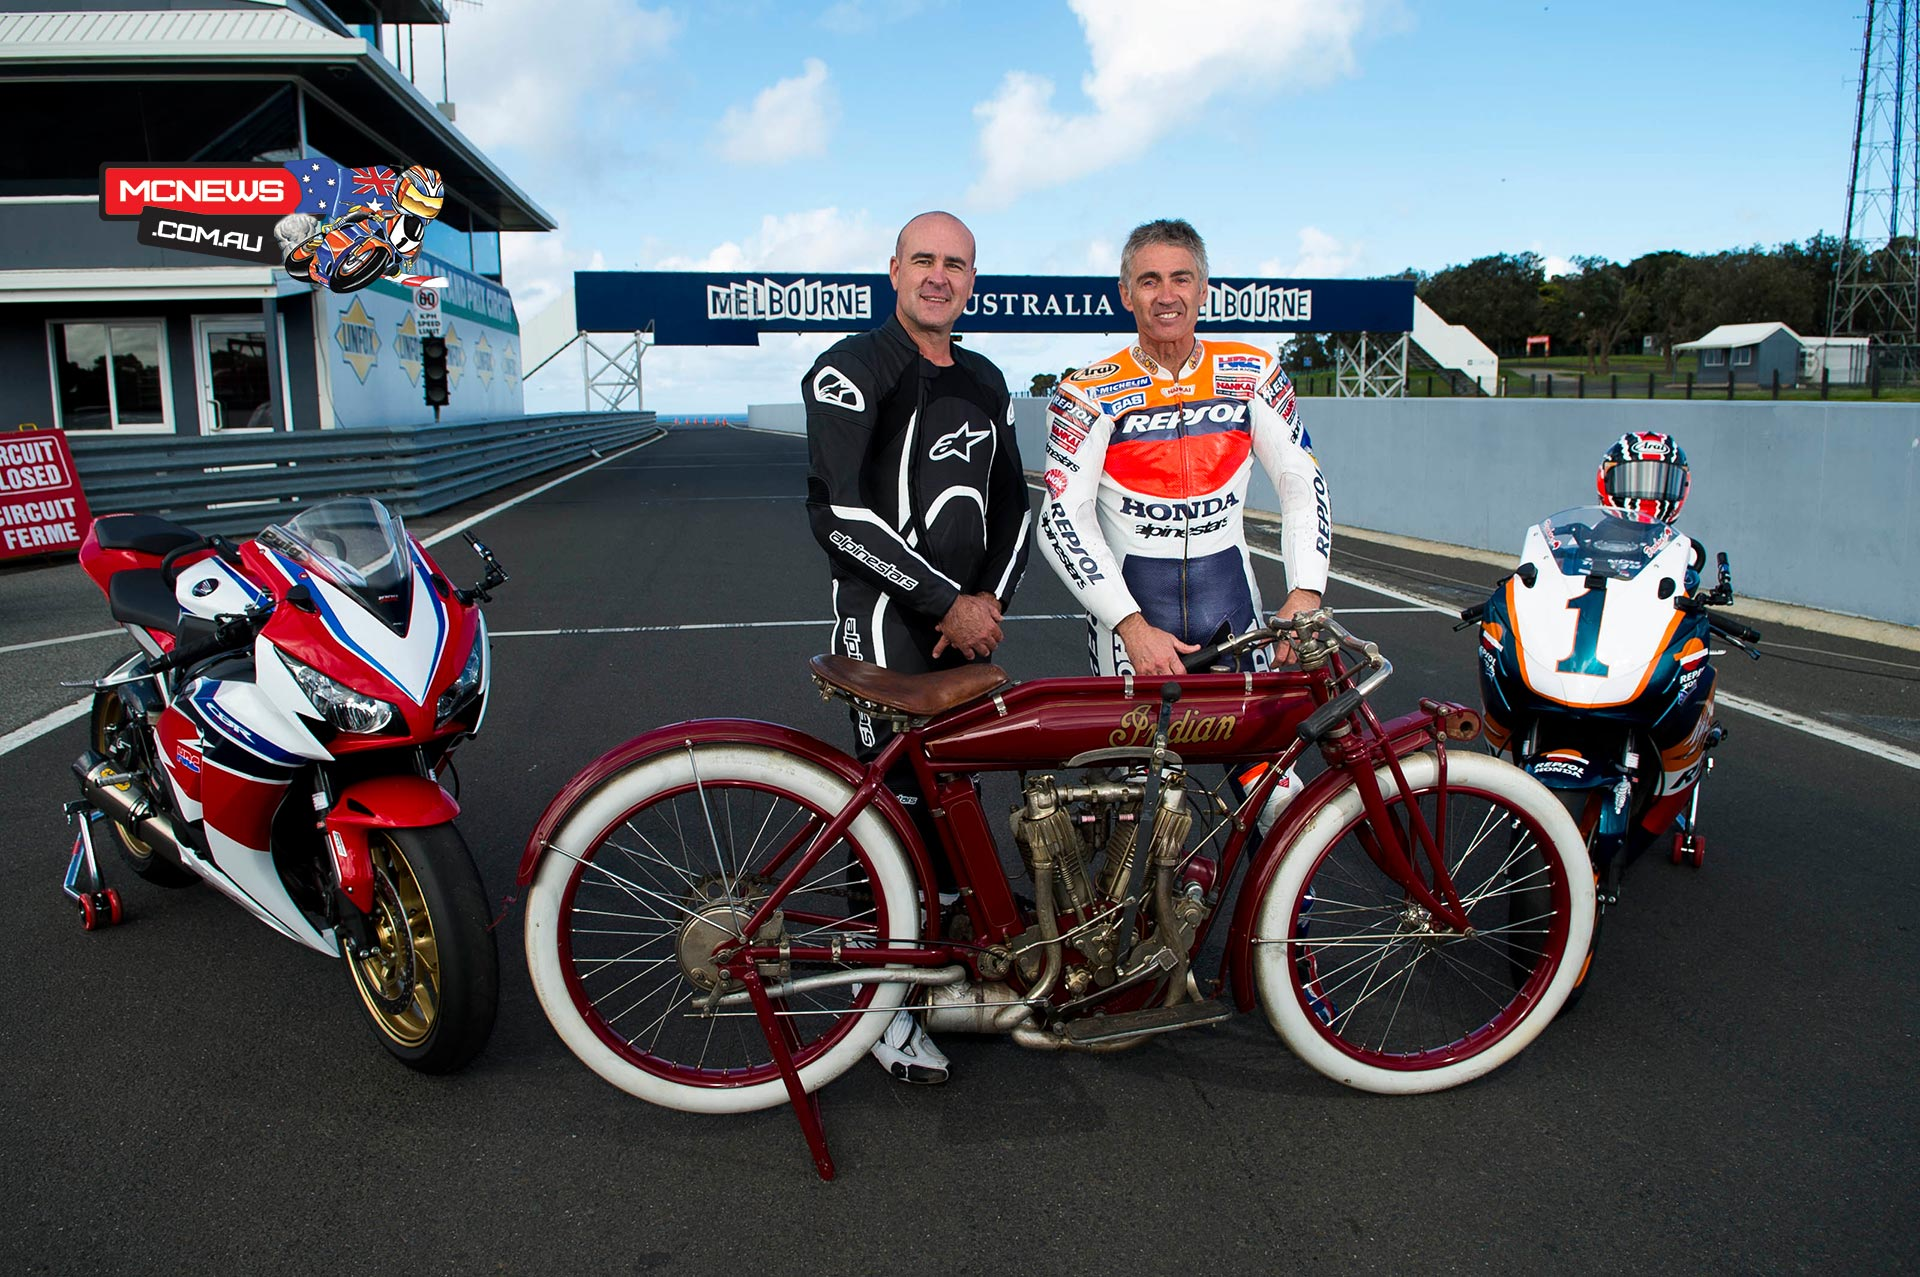 Australian Motorcycle Grand Prix turns 100 - Daryl Beattie and Mick Doohan with a 1914 Indian